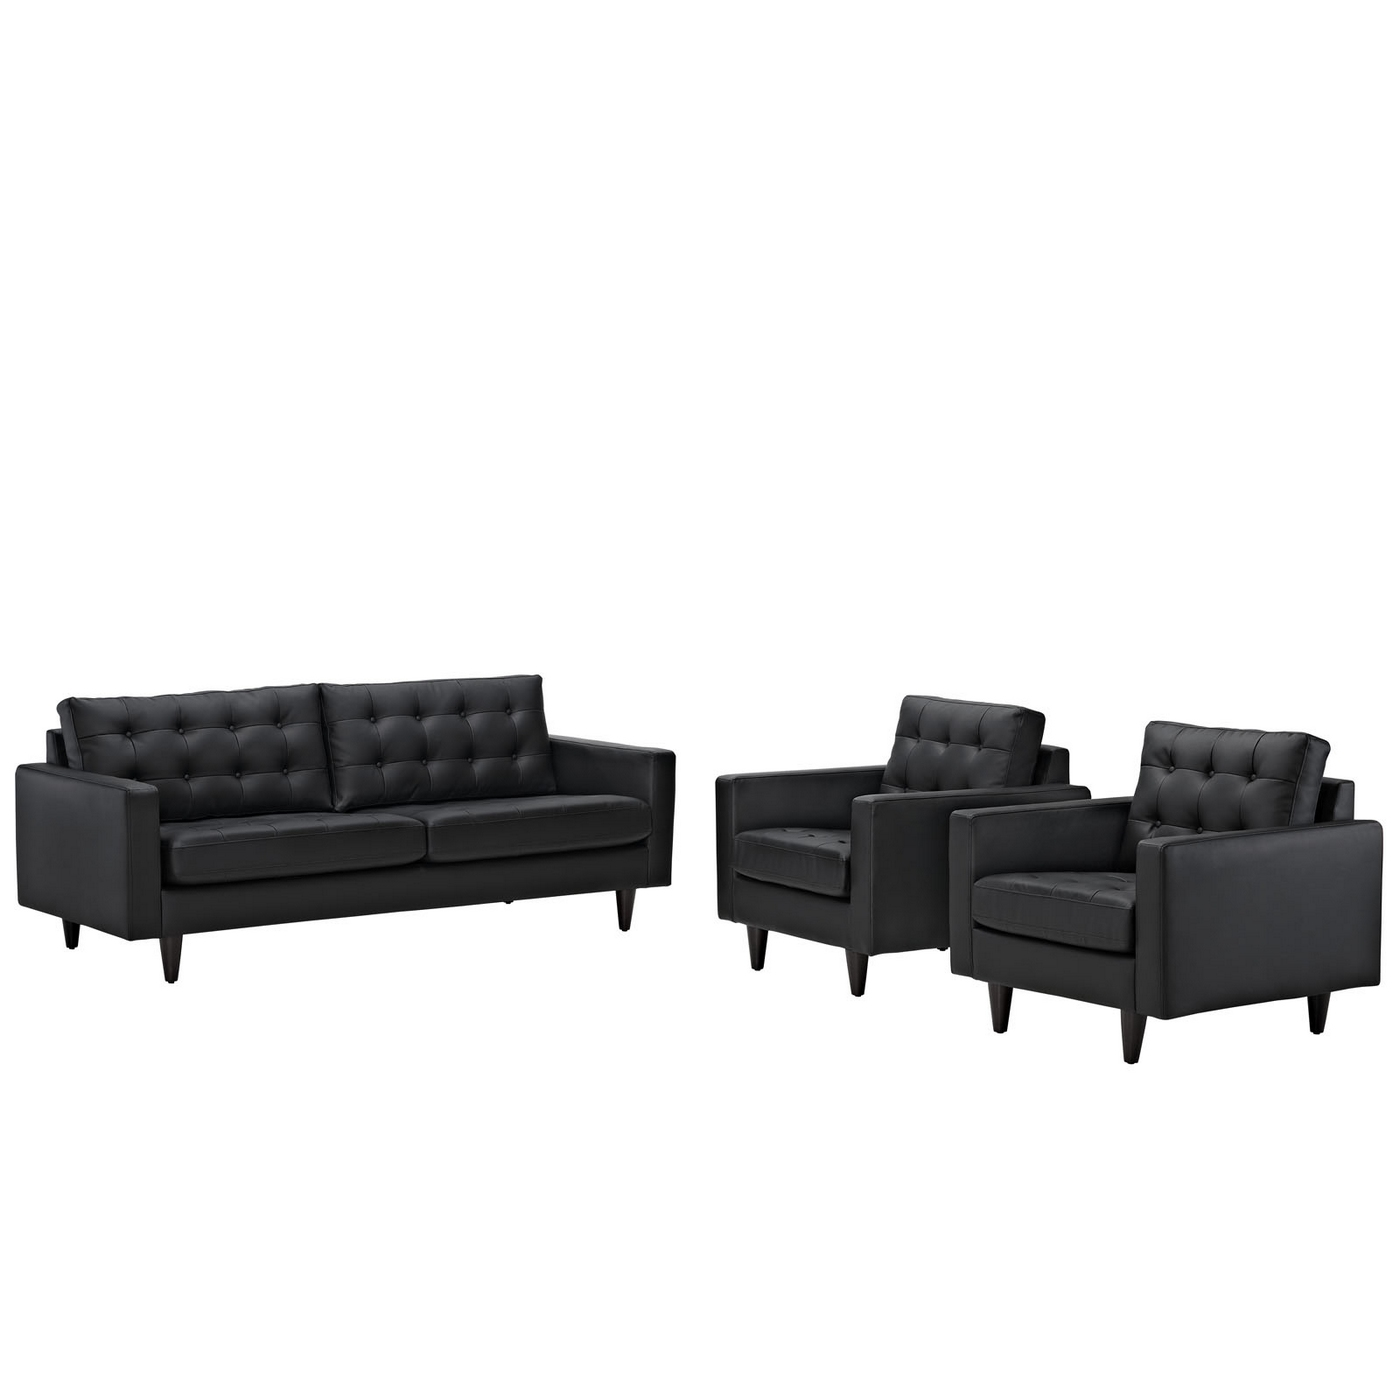 Empress Modern 3pc Button Tufted Leather Sofa And Armchair